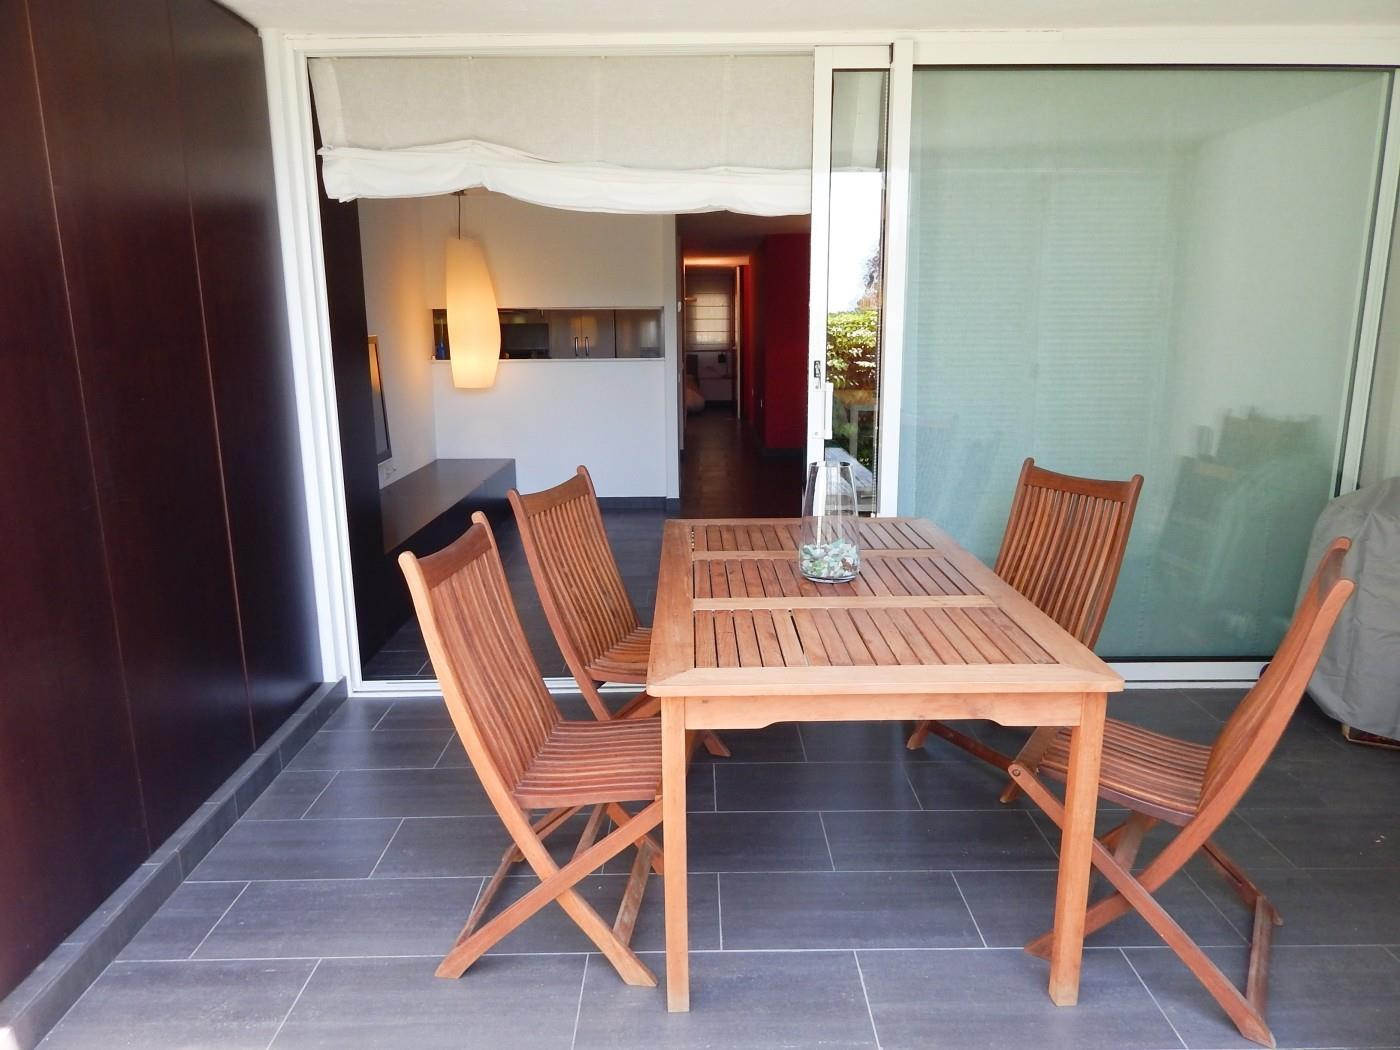 Rent Apartment with Swimming pool in Platja d'Aro - Gardenies Planta Baixa Piscina i Wifi - 36